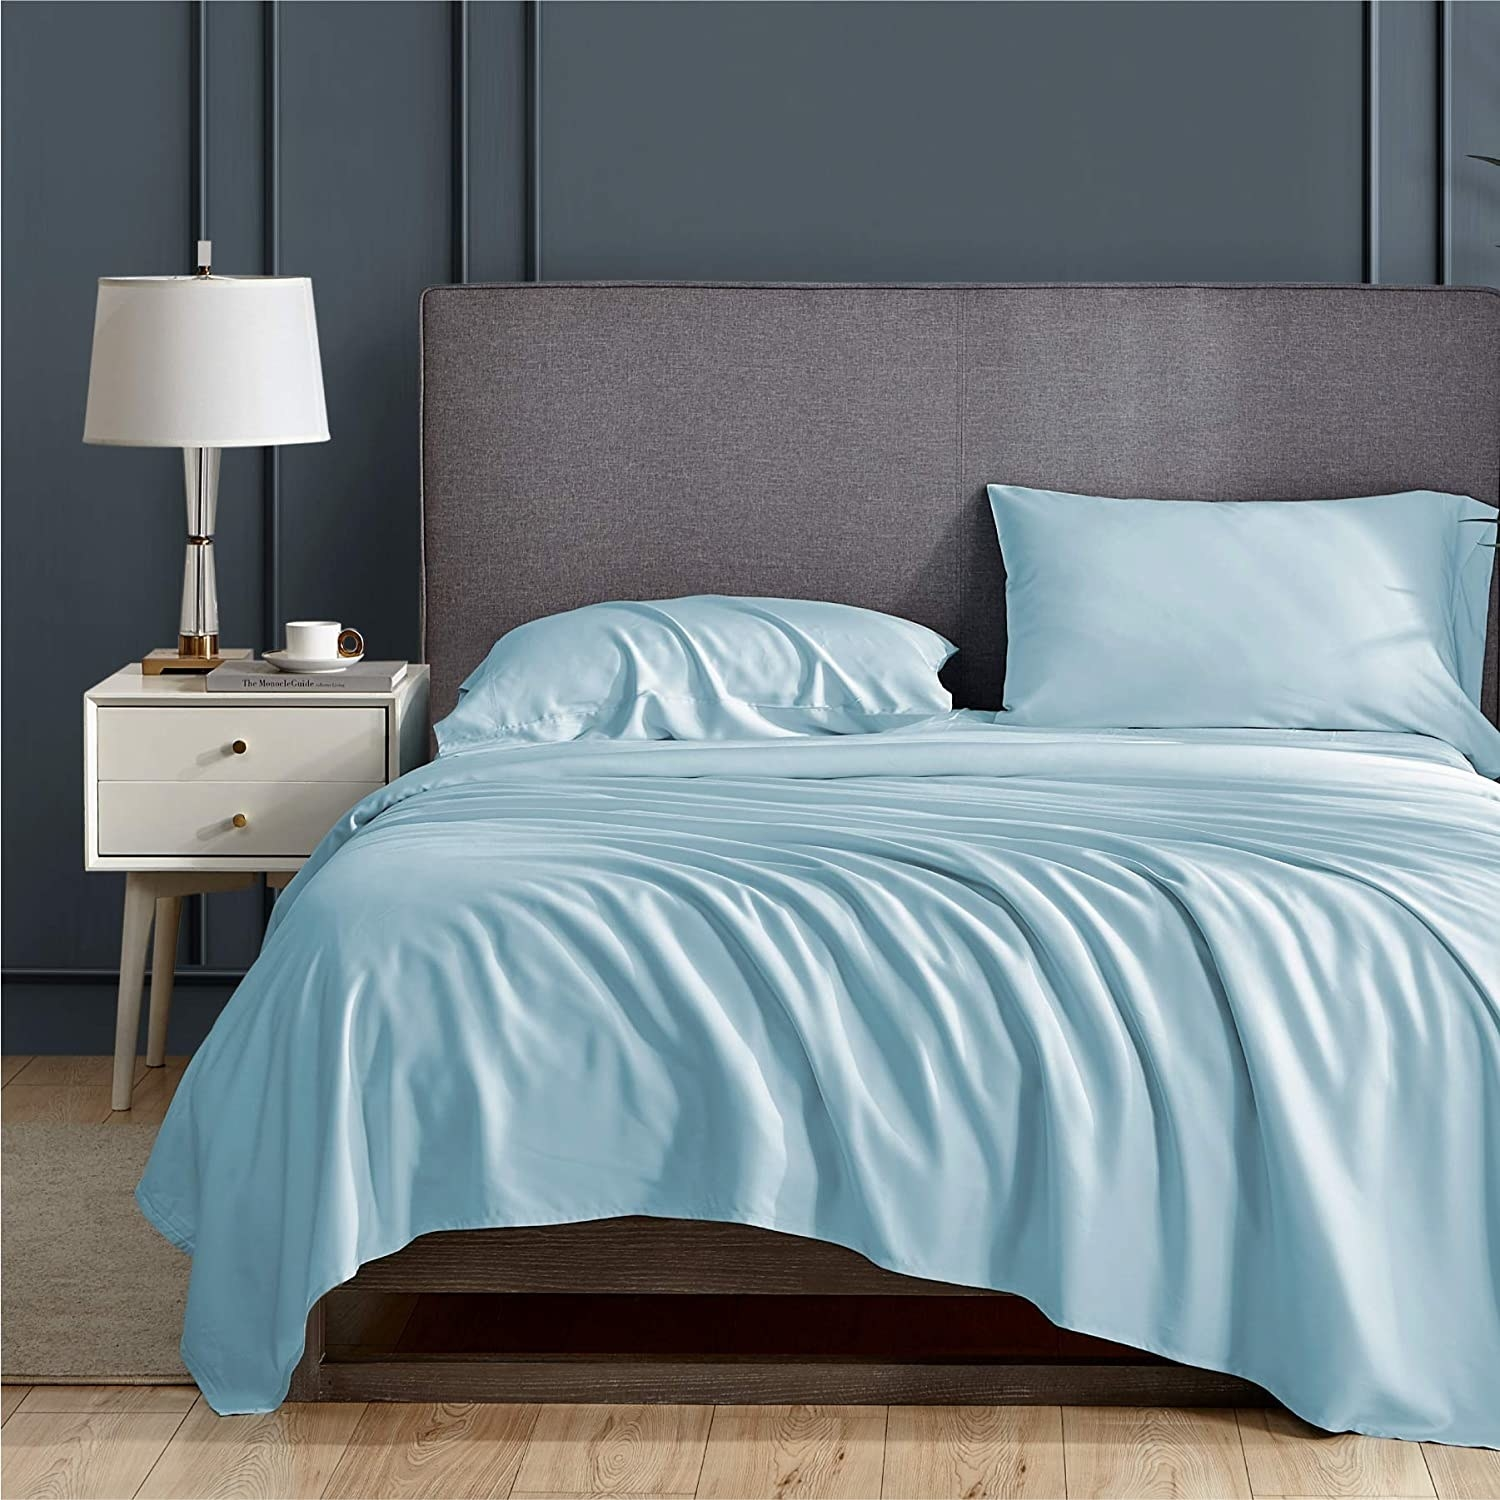 The set of sheets in blue